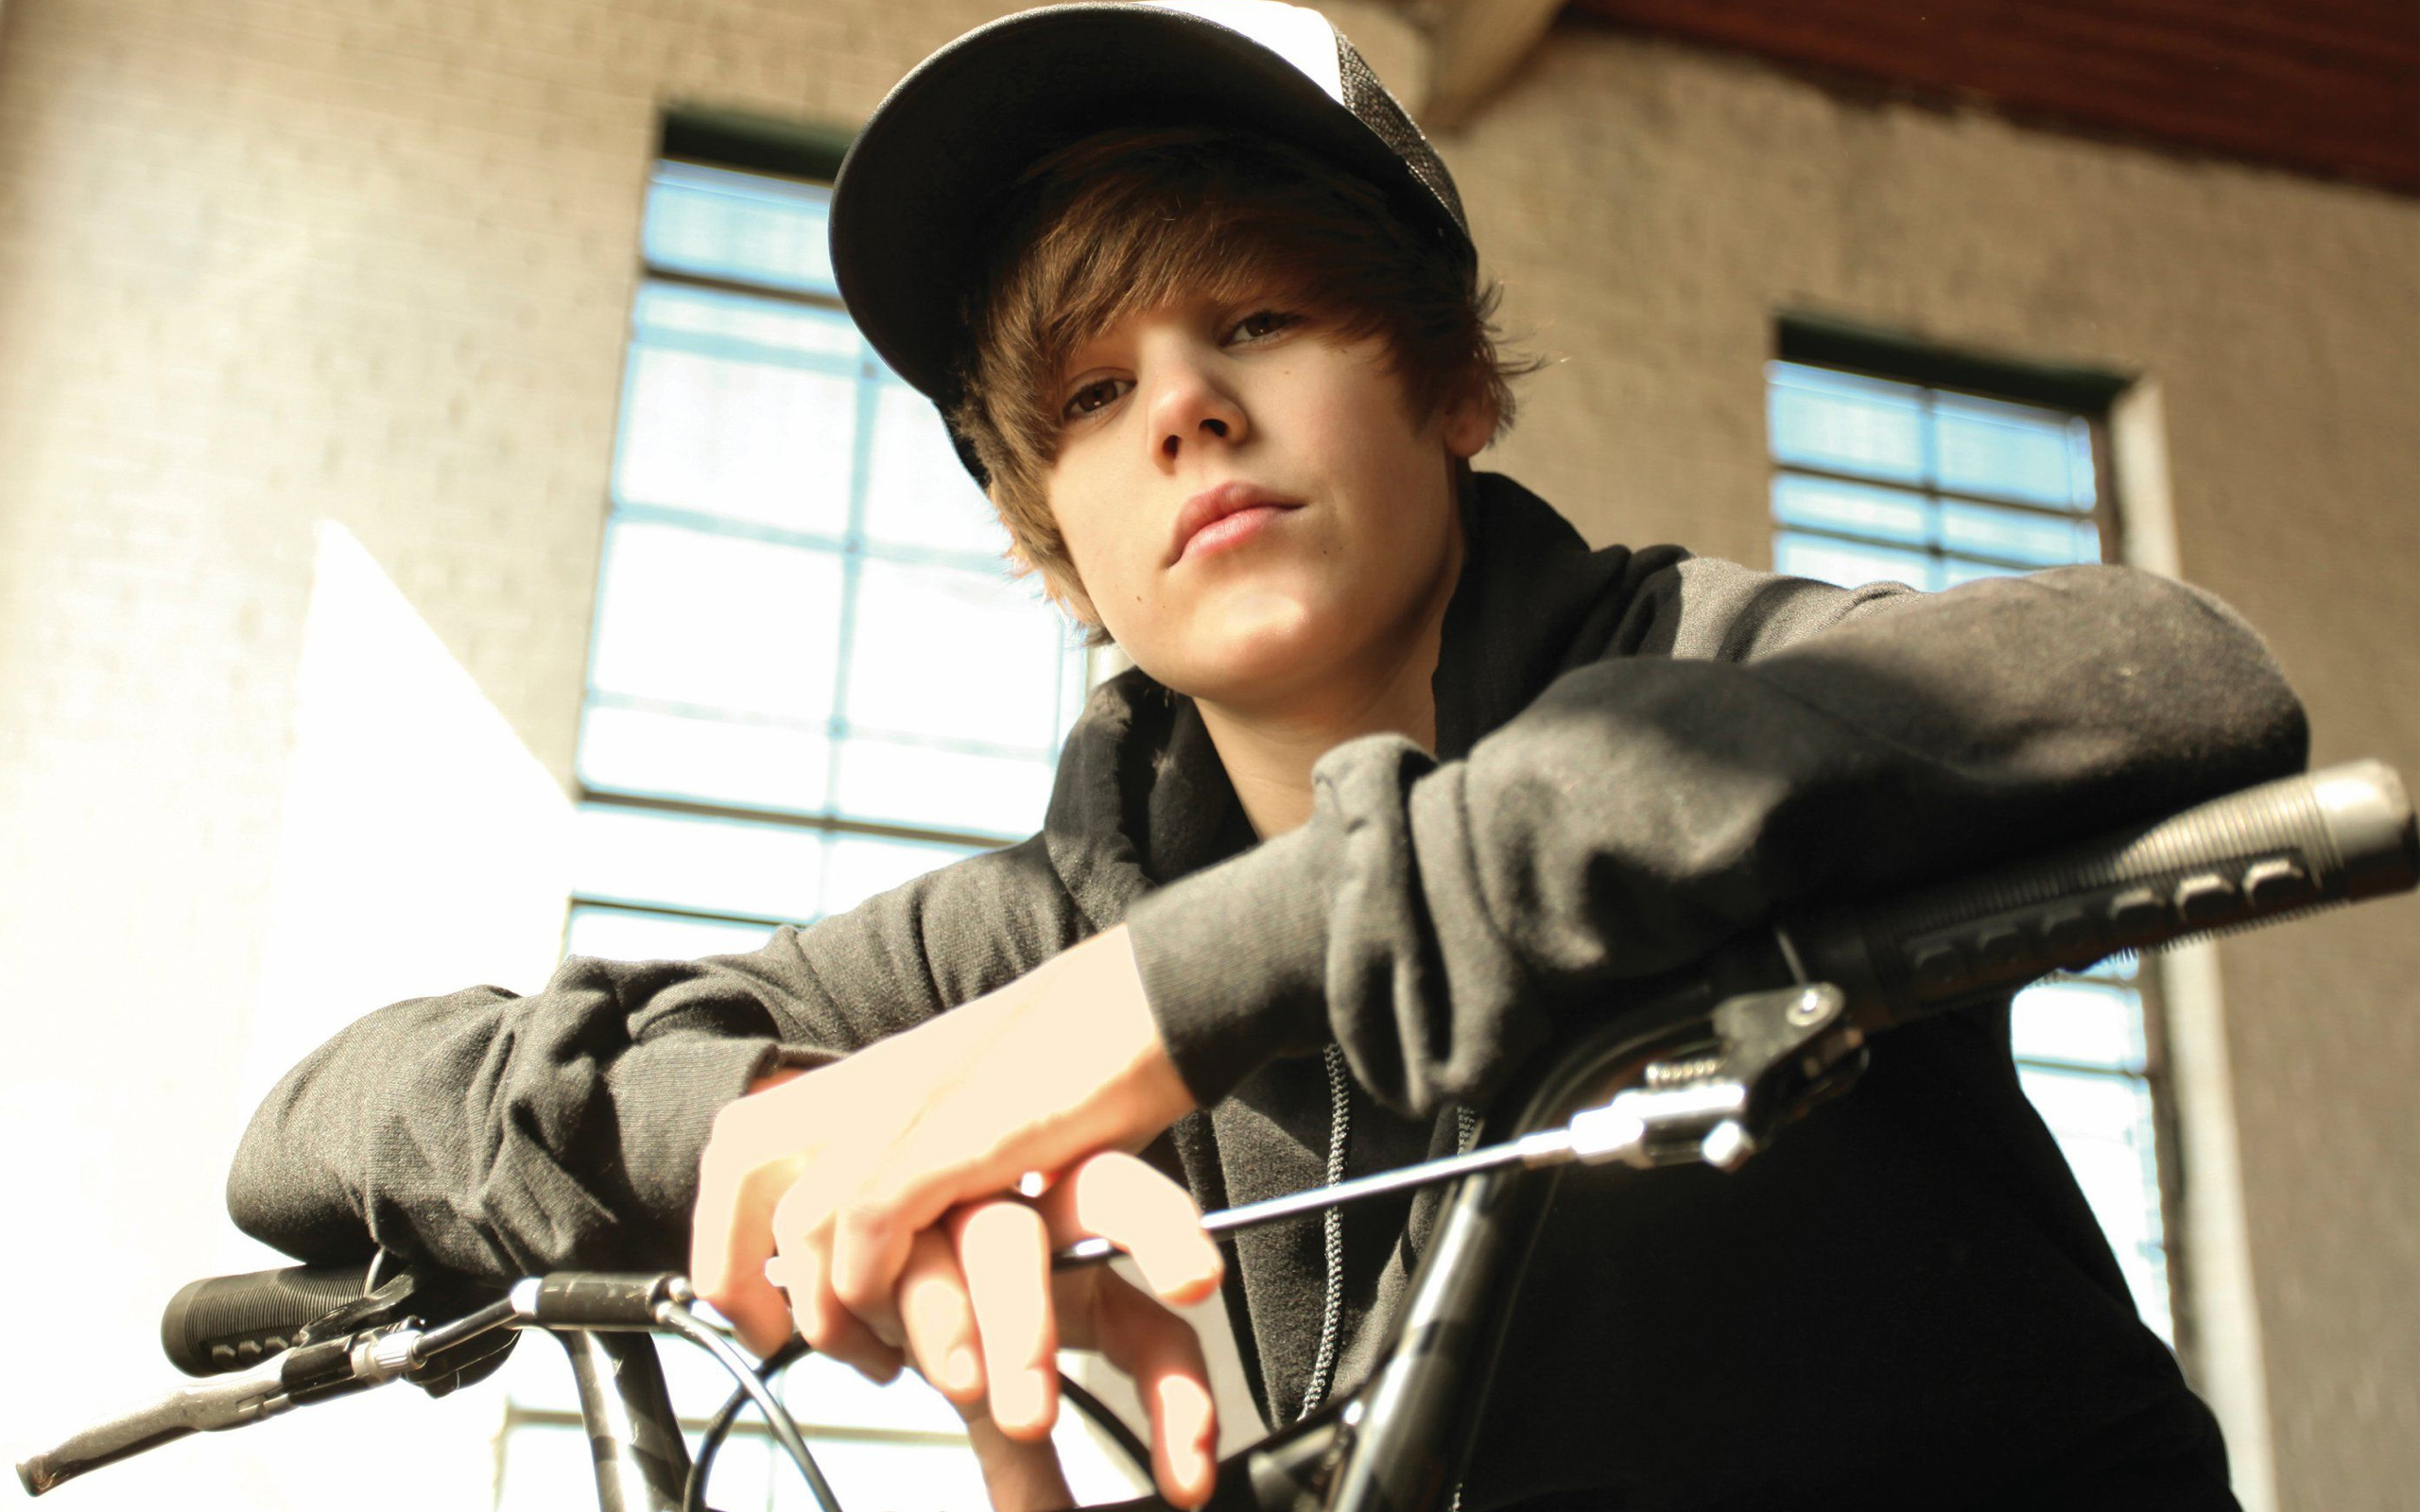 Justin Bieber Wallpapers High Quality